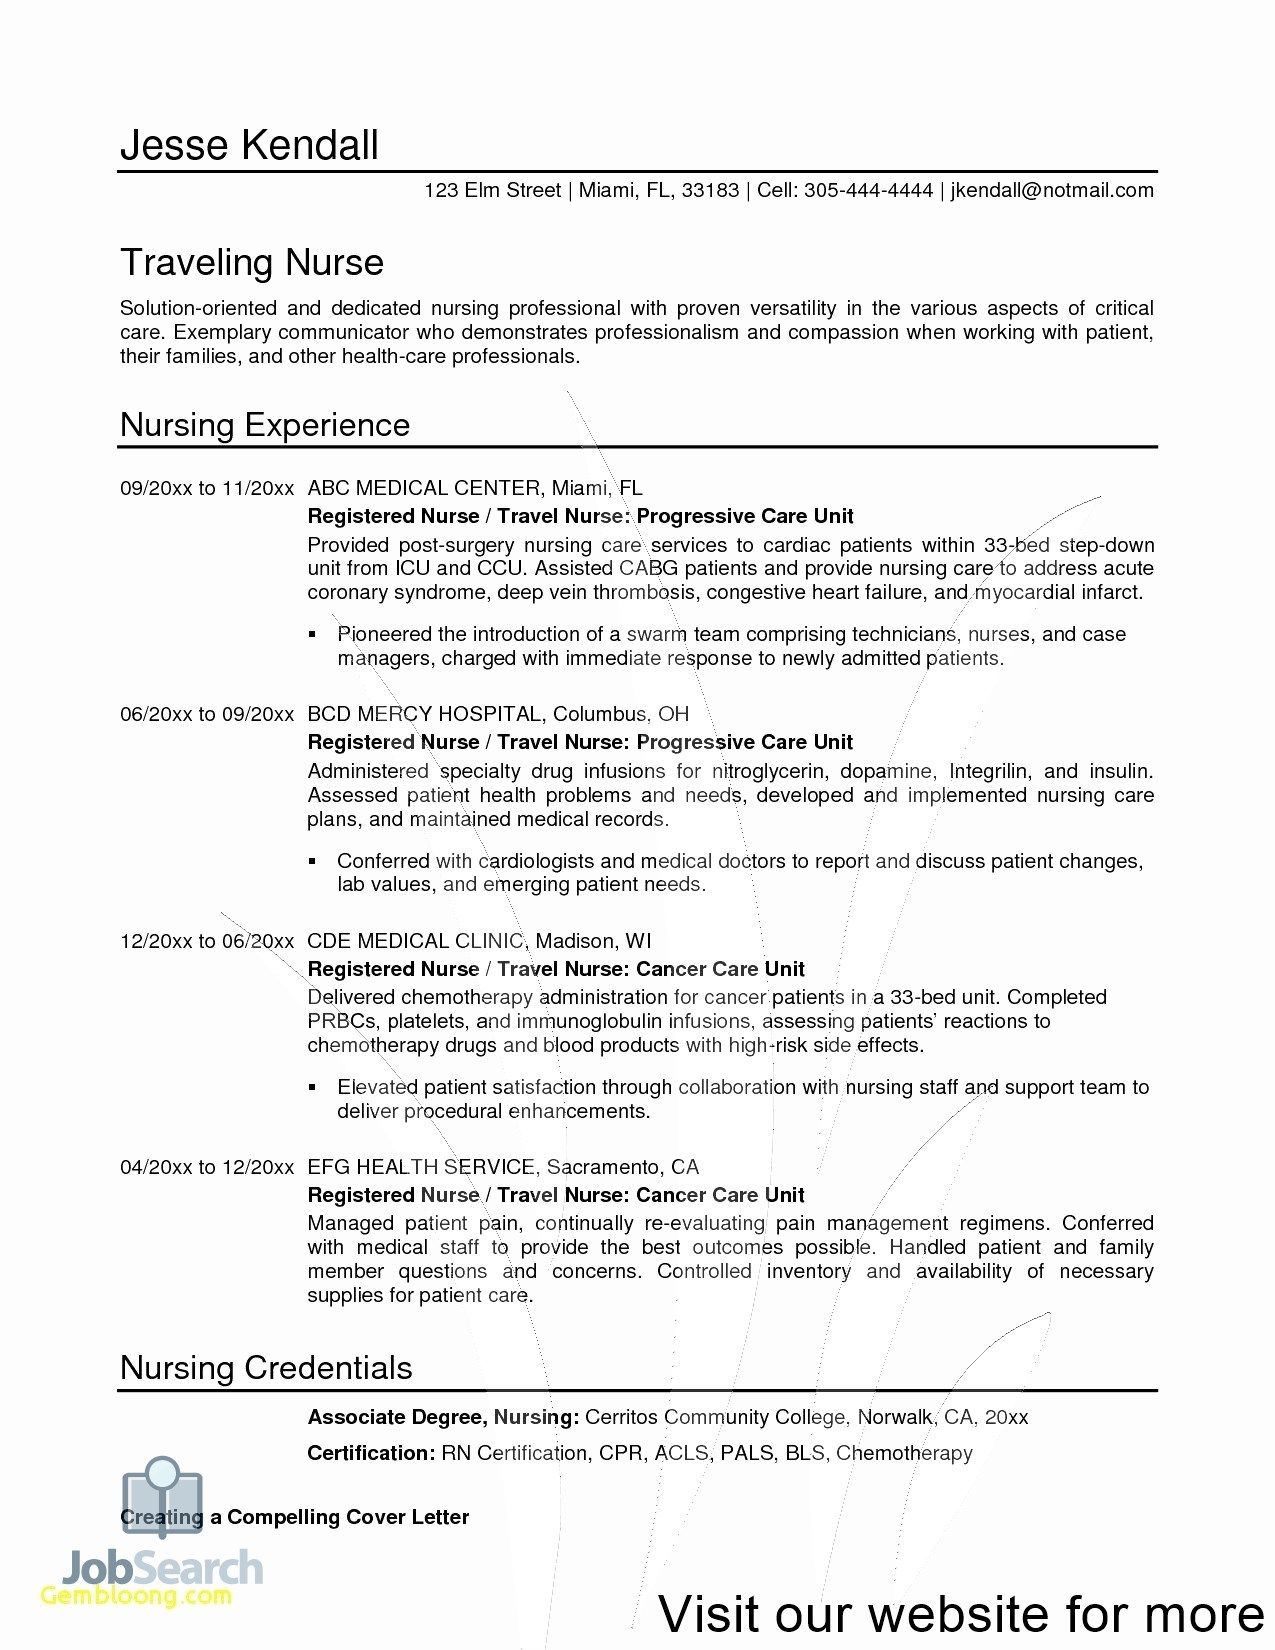 resume design template free in 2020 Registered nurse